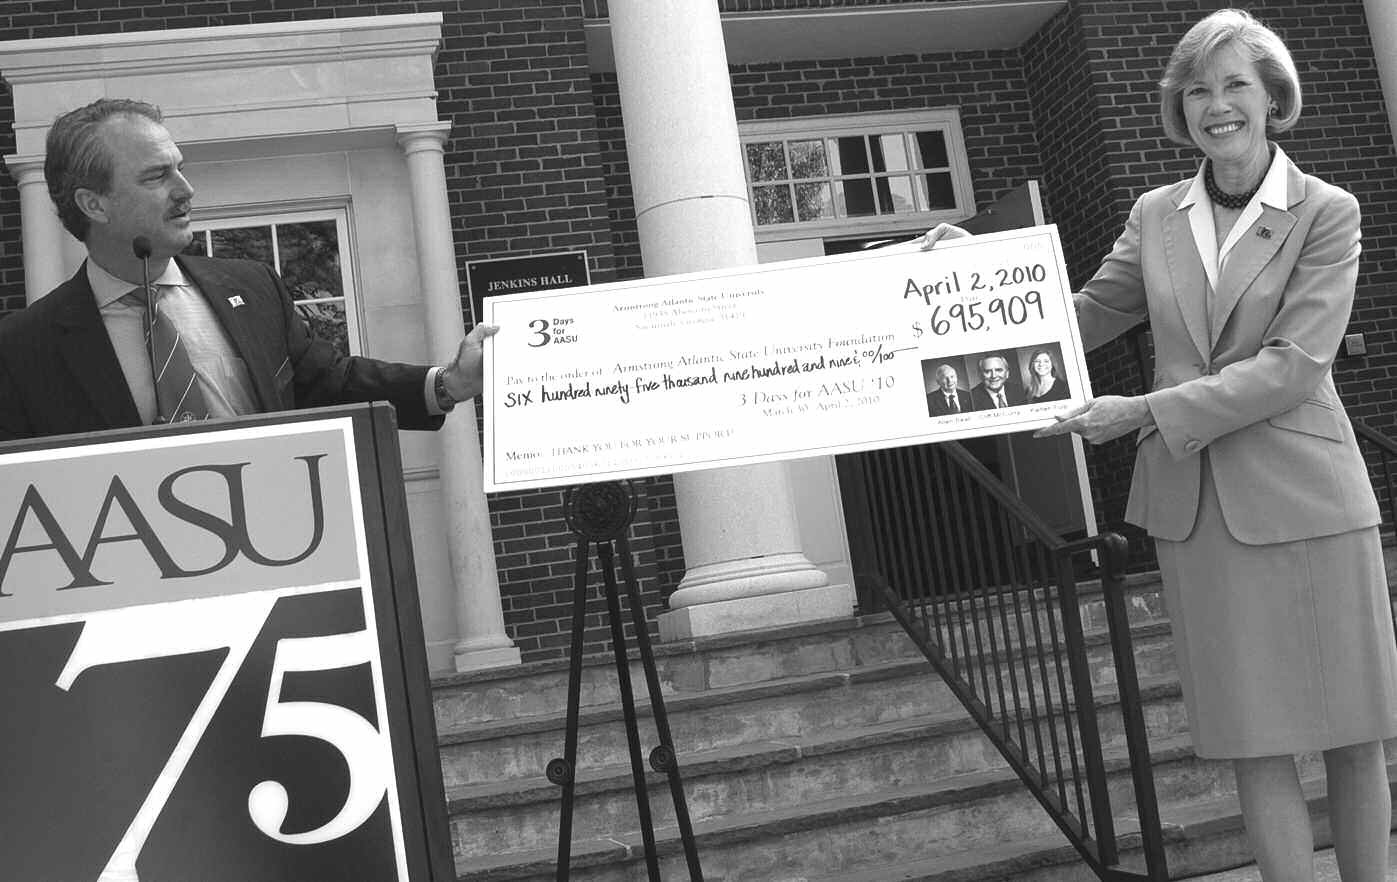 John Helmken, CEO and president of Savannah Bank and chair of the AASU Foundation Board, presented a check for $695,909 to AASU President Linda Bleicken.